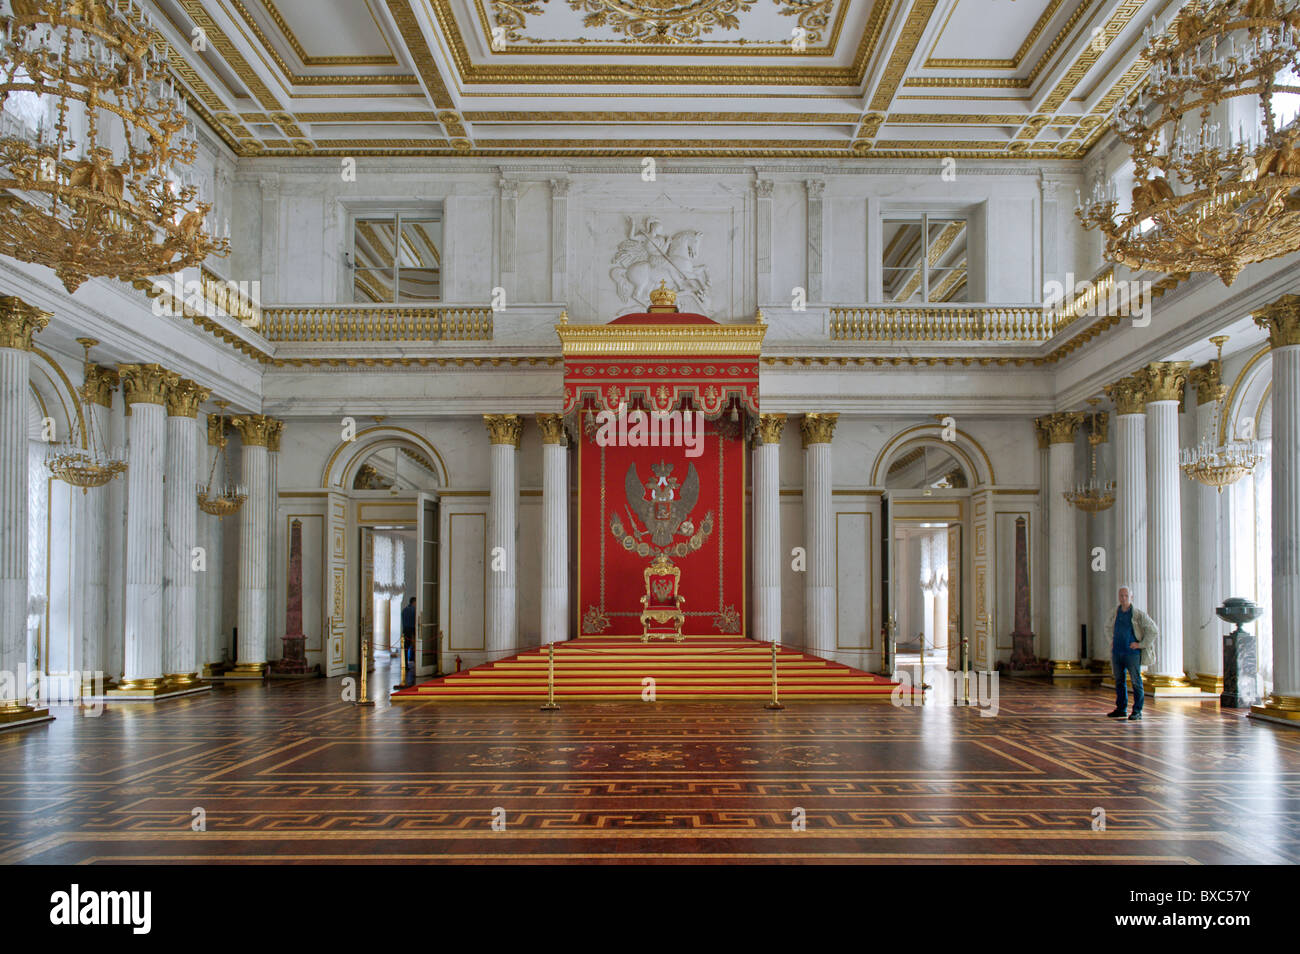 The Hermitage St George Hall St Petersburg Russia - Stock Image